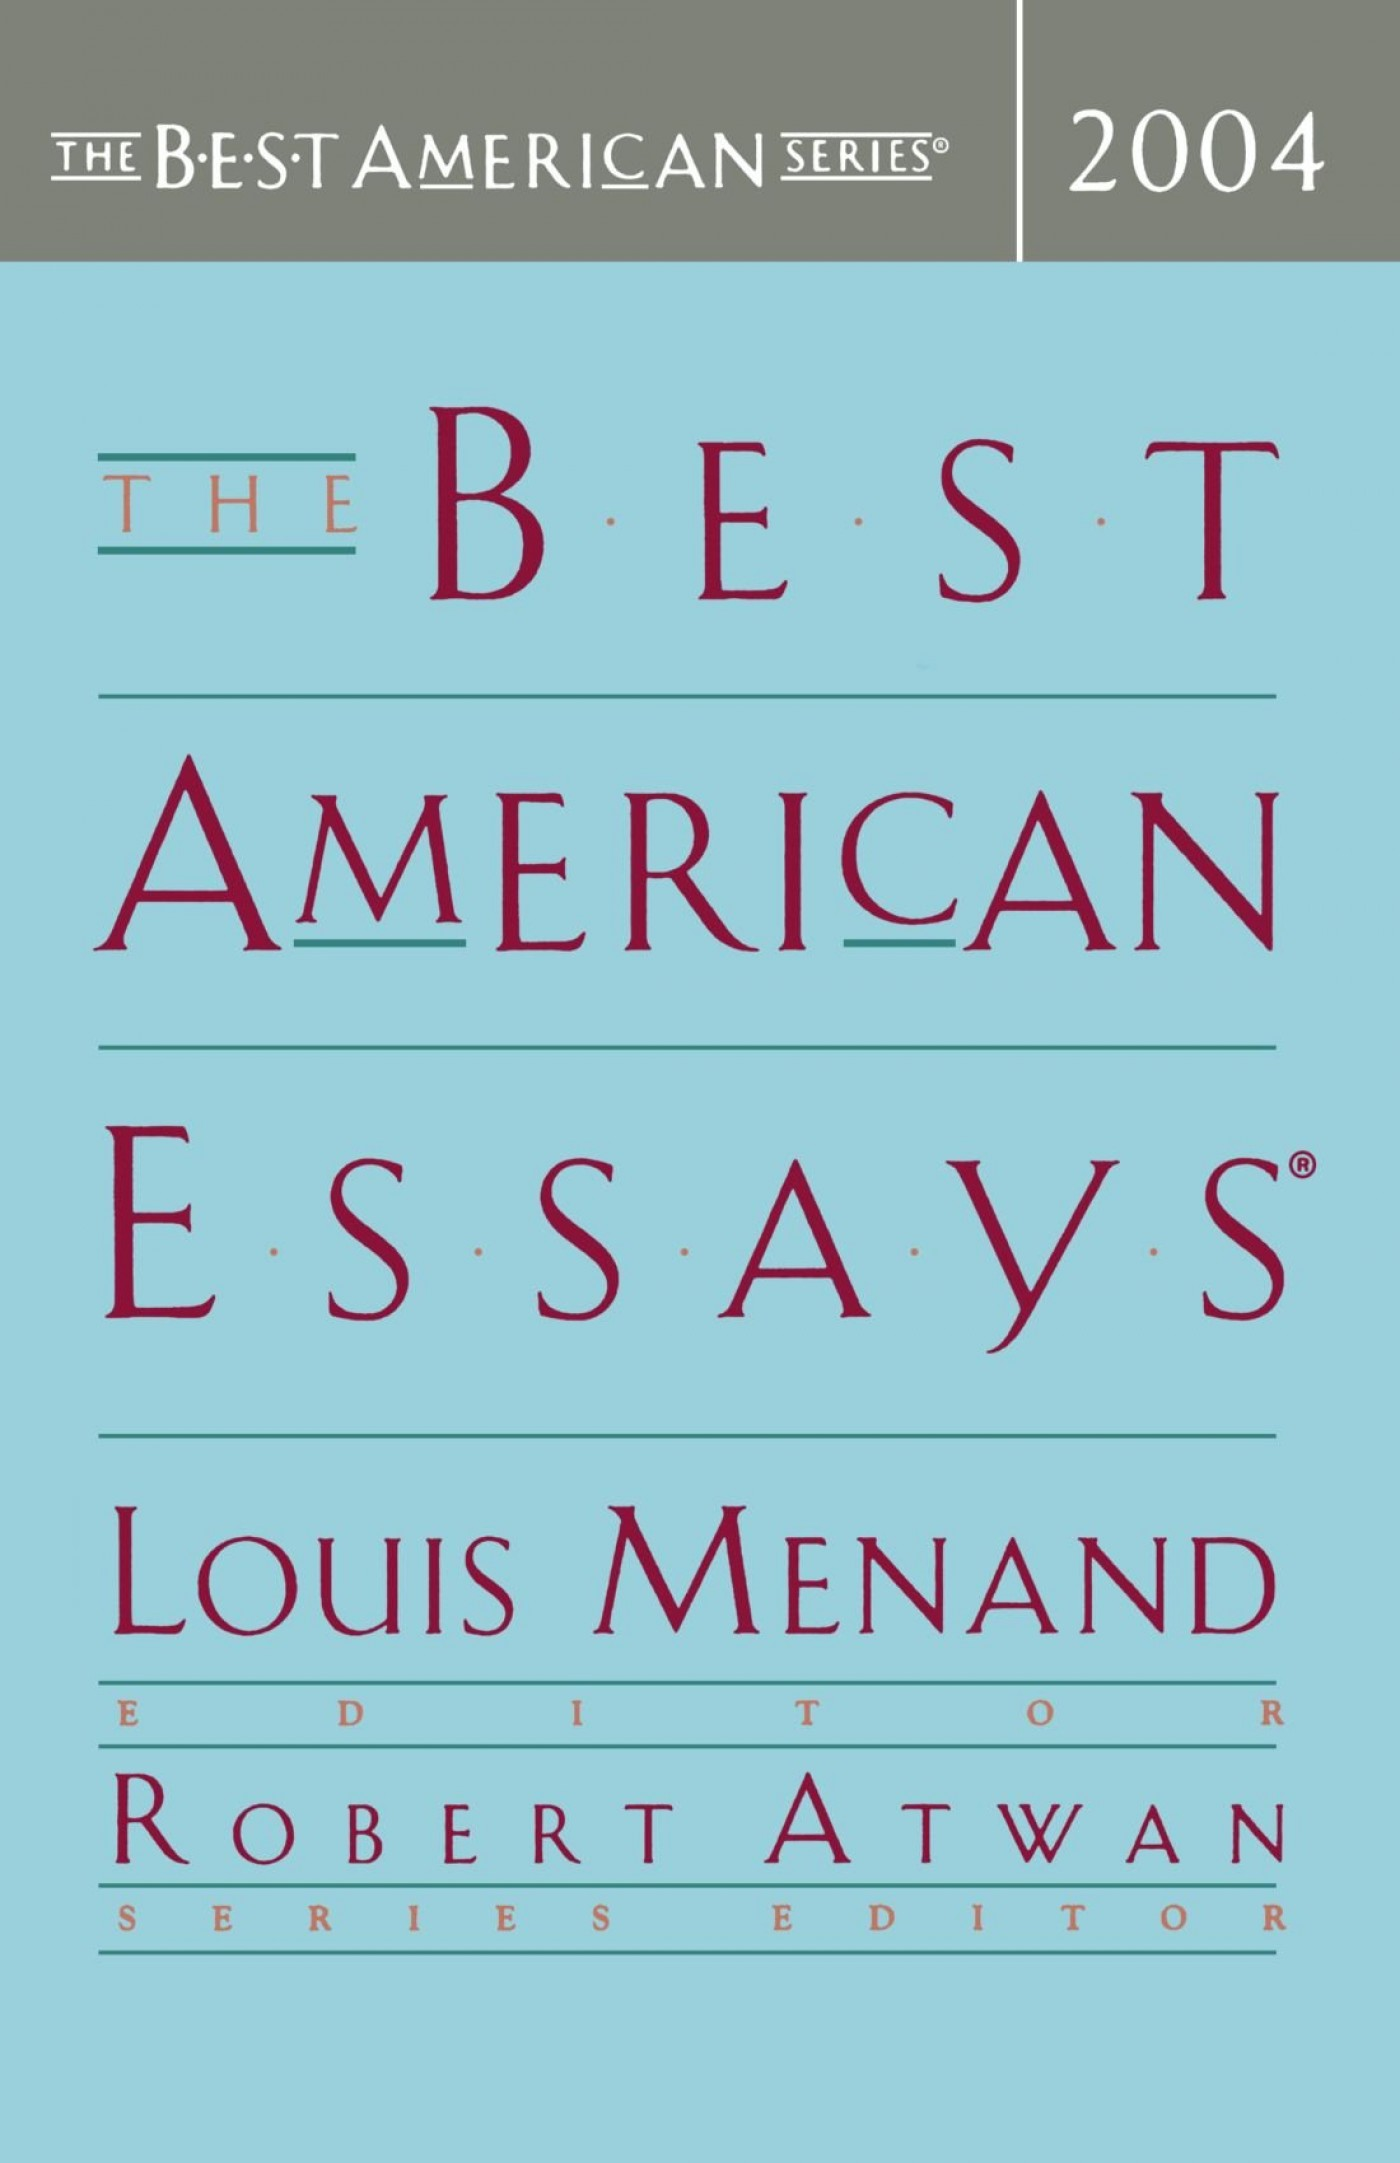 015 Essay Example The Best American Essays Wonderful 2013 Pdf Download Of Century Sparknotes 2017 1400